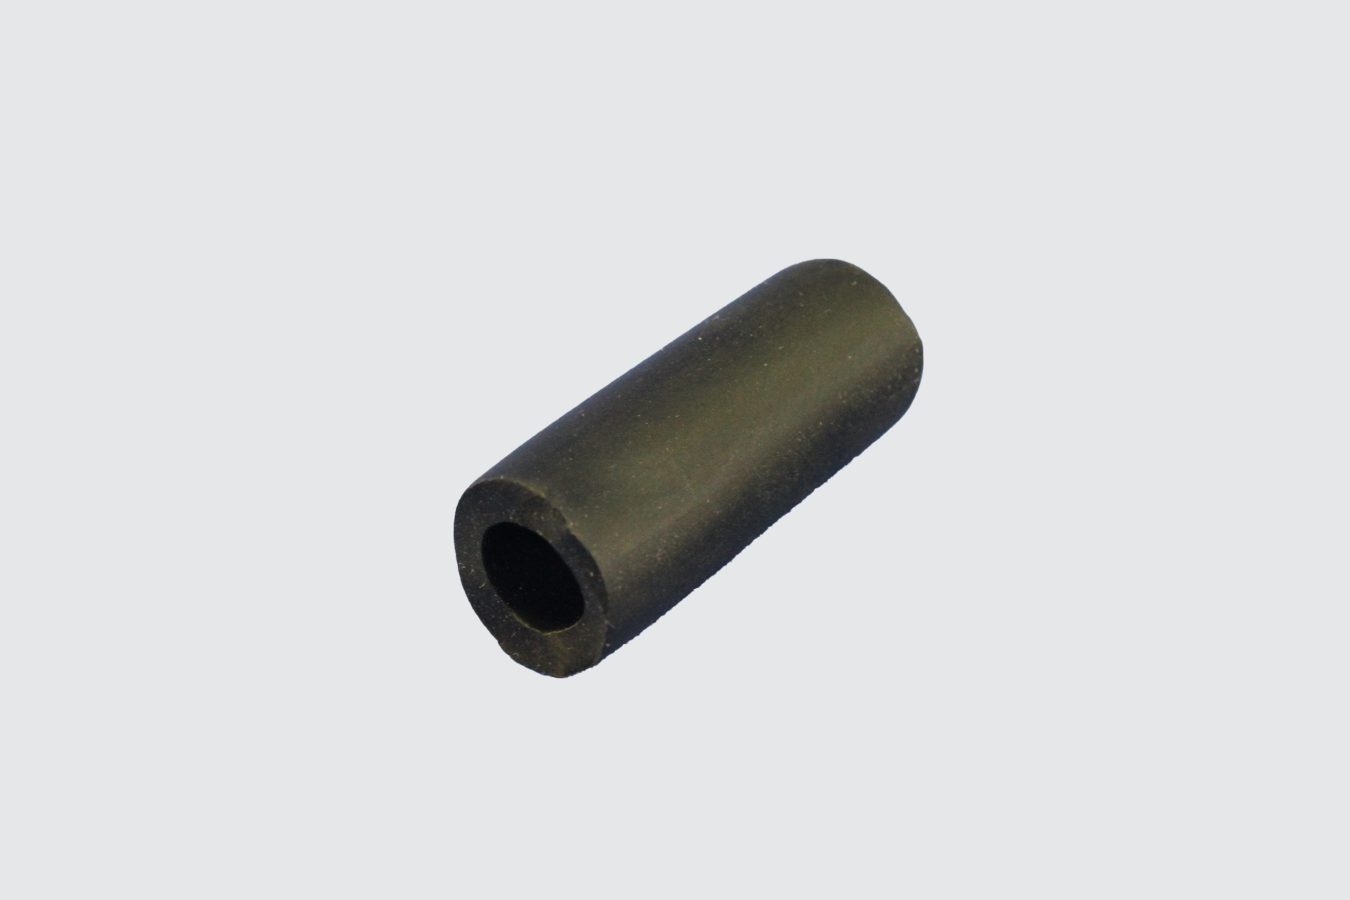 35360775-TUBING, 5/16 I.D. SOLD BY THE INCH